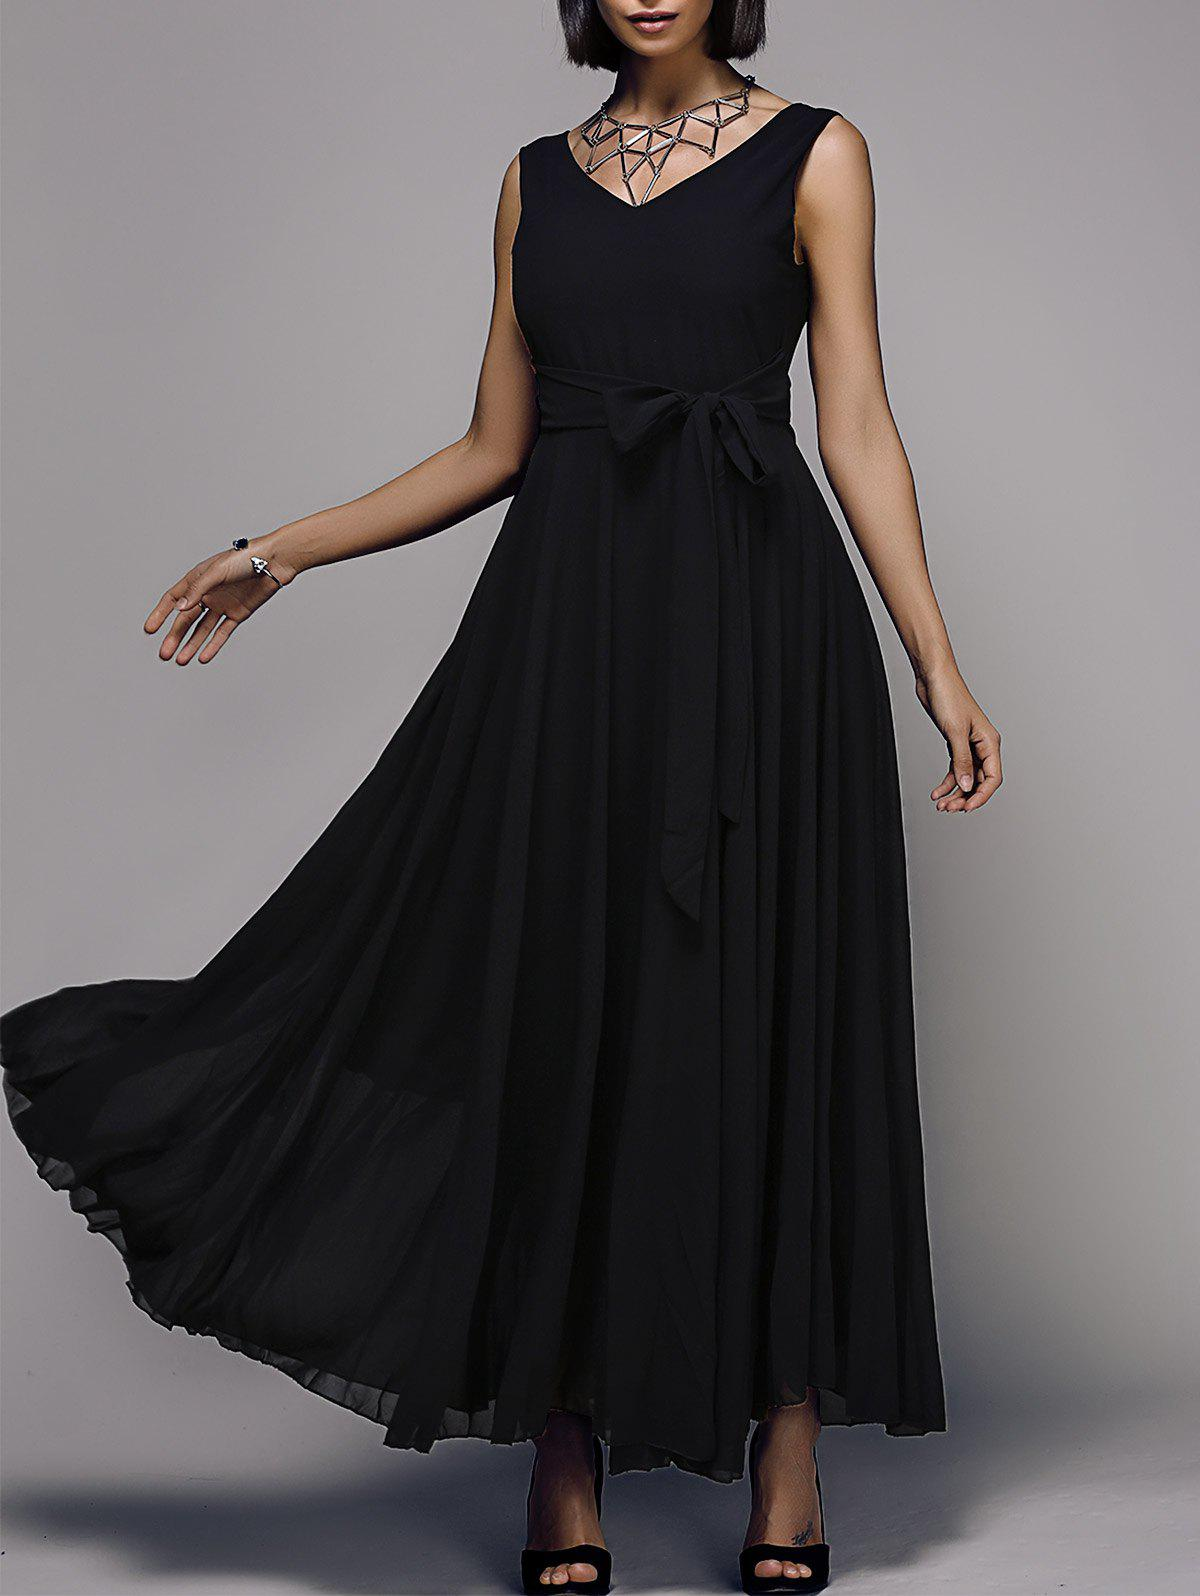 Elegant Solid Color Sleeveless V-Neck Women's Chiffon Dress - BLACK M